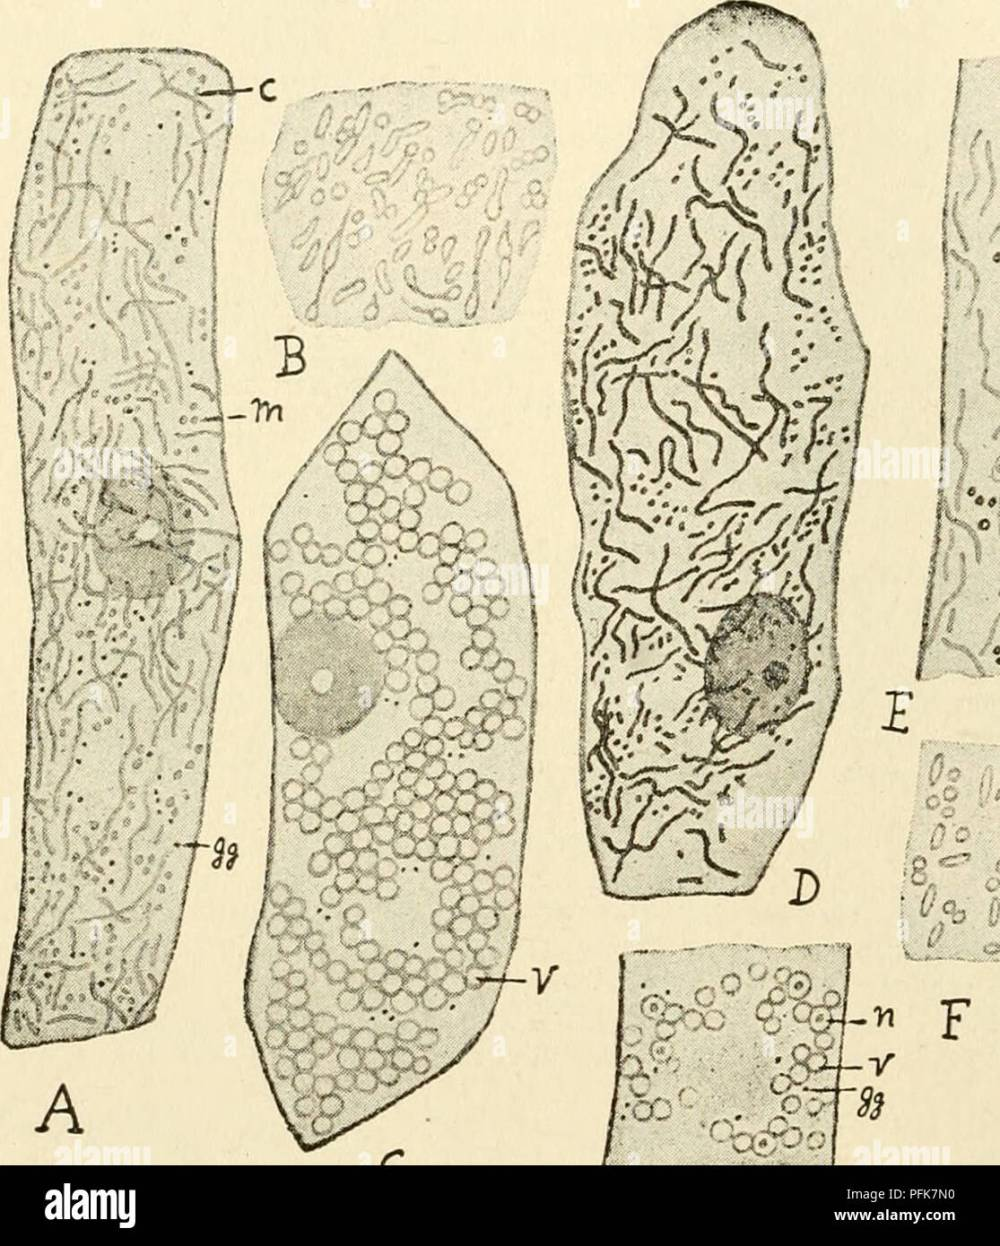 medium resolution of  the cytoplasm of the plant cell plant cells and tissues protoplasm guilliermond atkinson 98 cytoplasm figure 60 gives a very exact idea of these